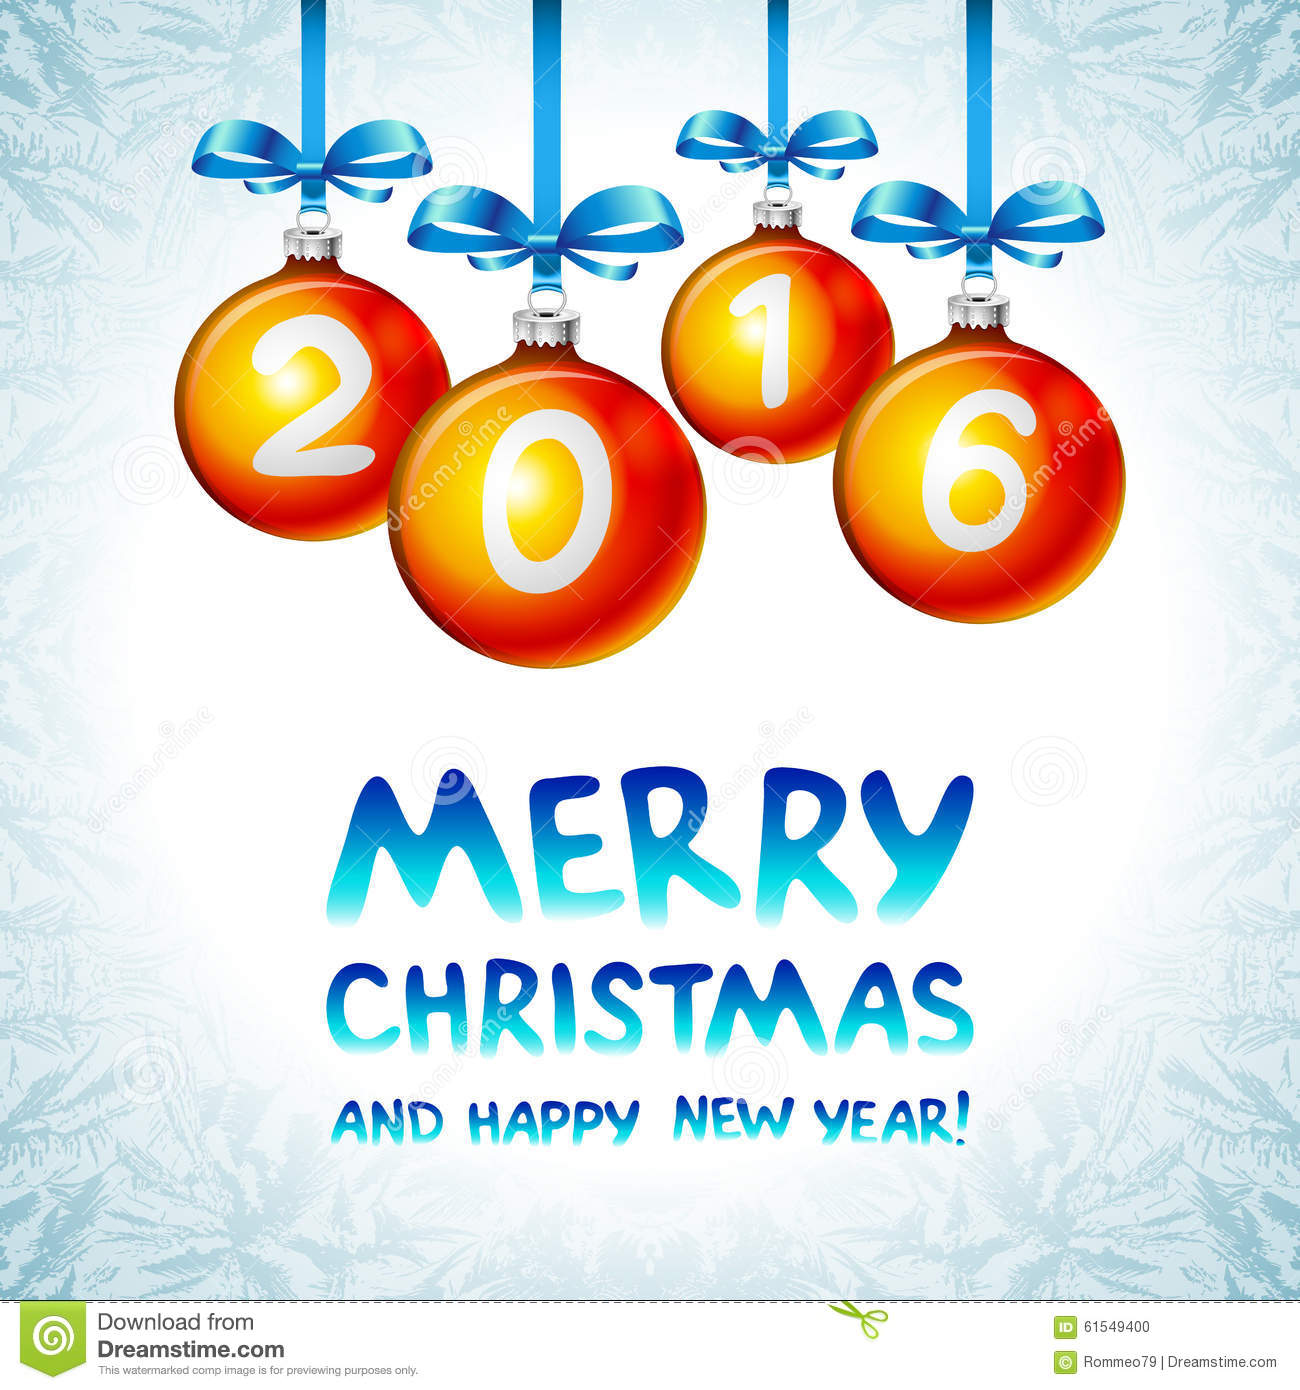 merry christmas and happy new year clip art free - photo #31